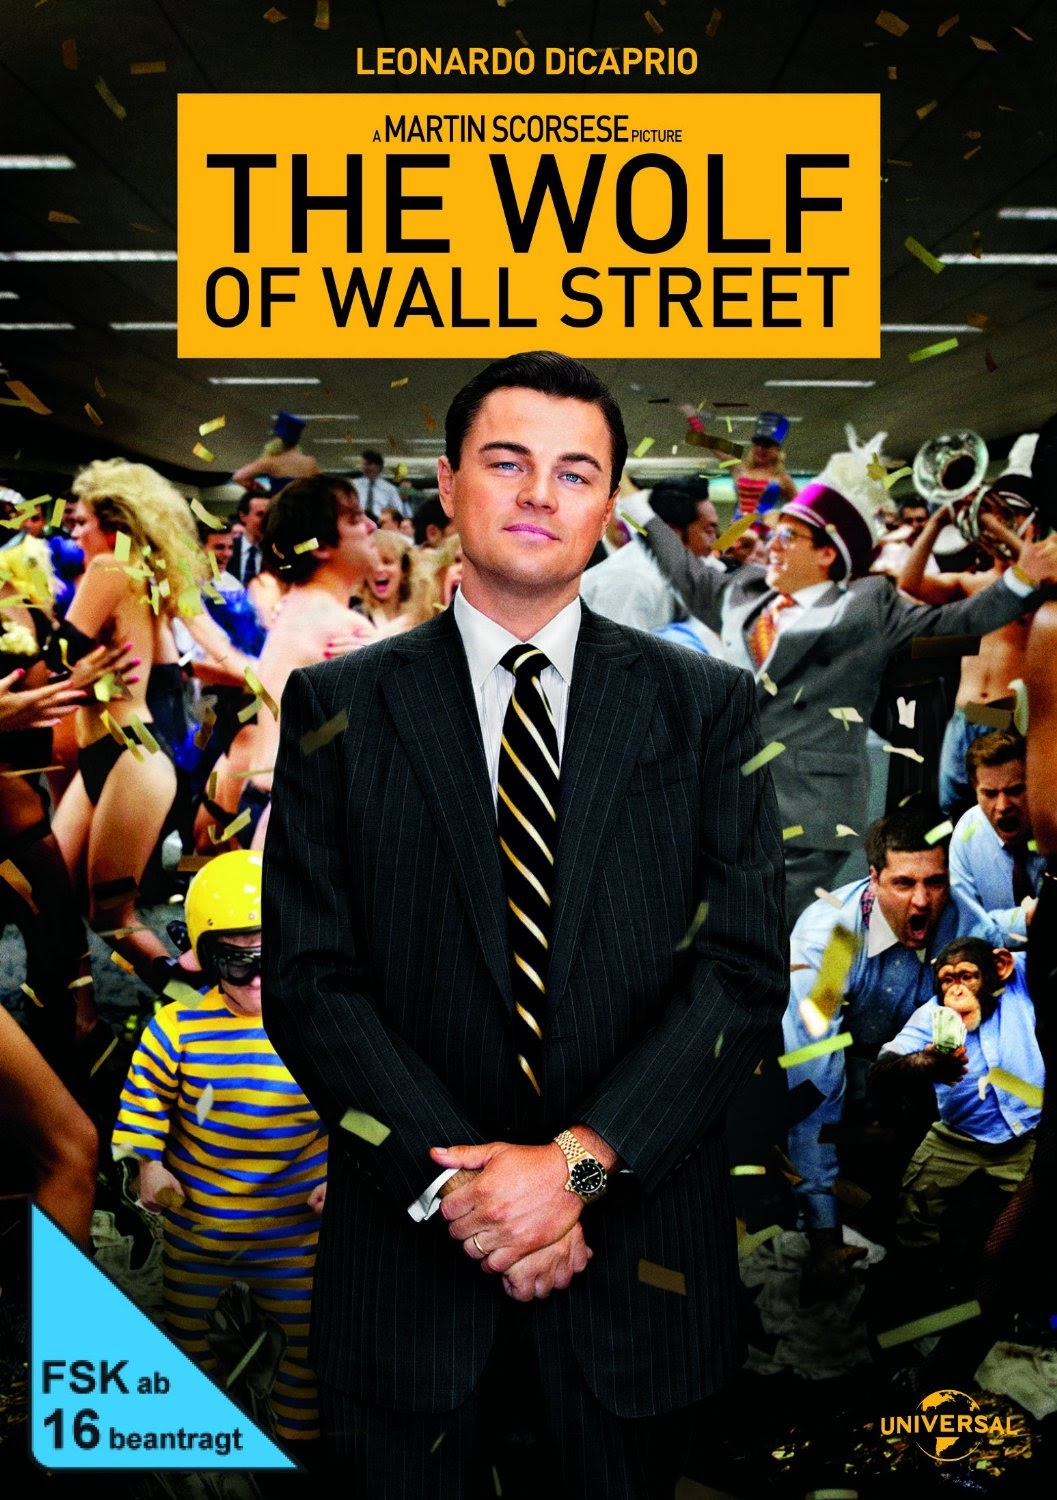 http://www.amazon.de/Wolf-Wall-Street-Leonardo-DiCaprio/dp/B00HUMI5SK/ref=sr_1_1?ie=UTF8&qid=1392052763&sr=8-1&keywords=the+wolf+of+wall+street